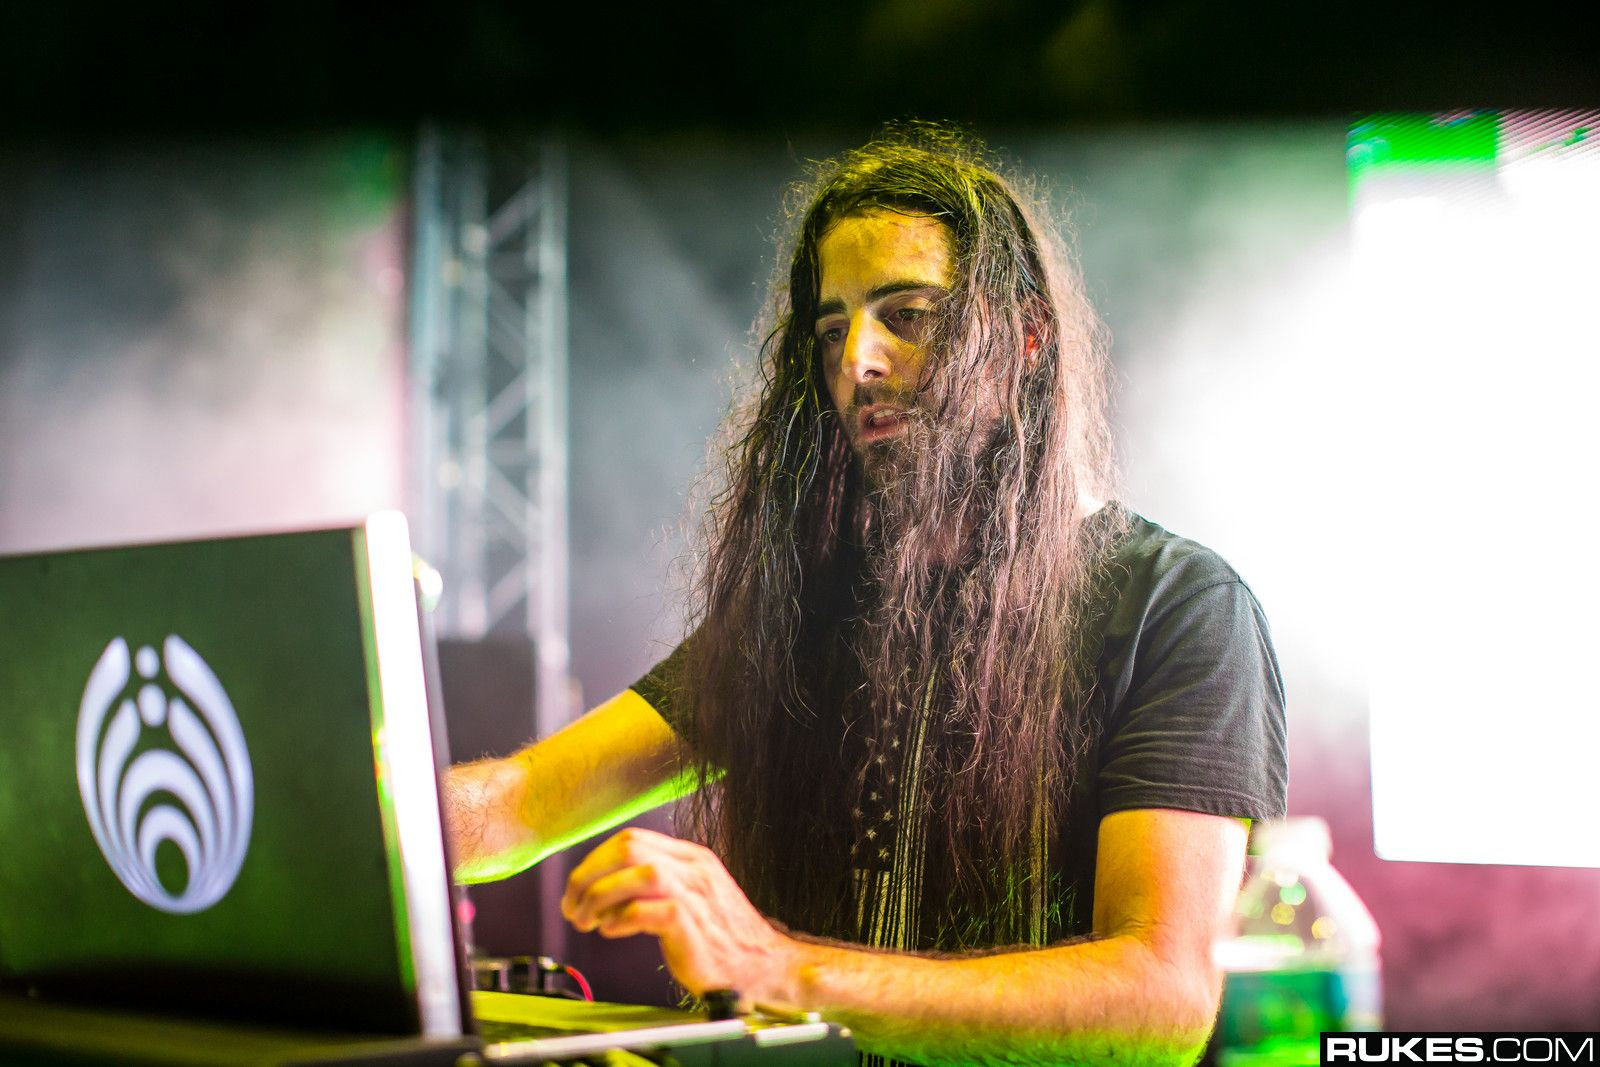 Bassnectar Talks About His Youth, First Song http://www.edmsauce.com/2015/01/22/bassnectar-talks-youth-first-tracks-90s-sound-inspiration/